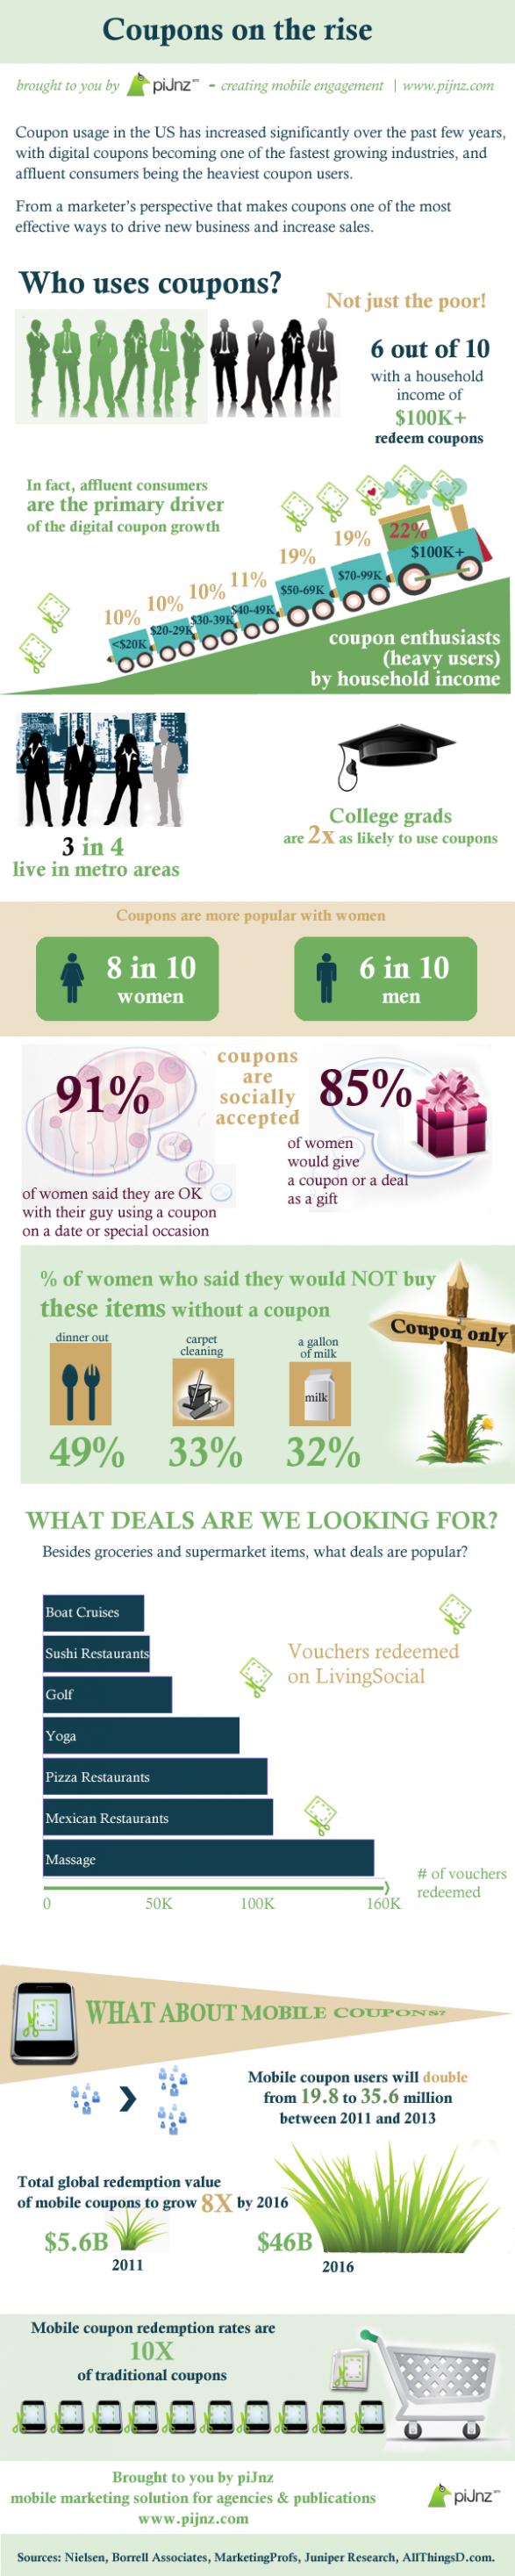 Infographic from piJnz showing stats on the rise of online coupons